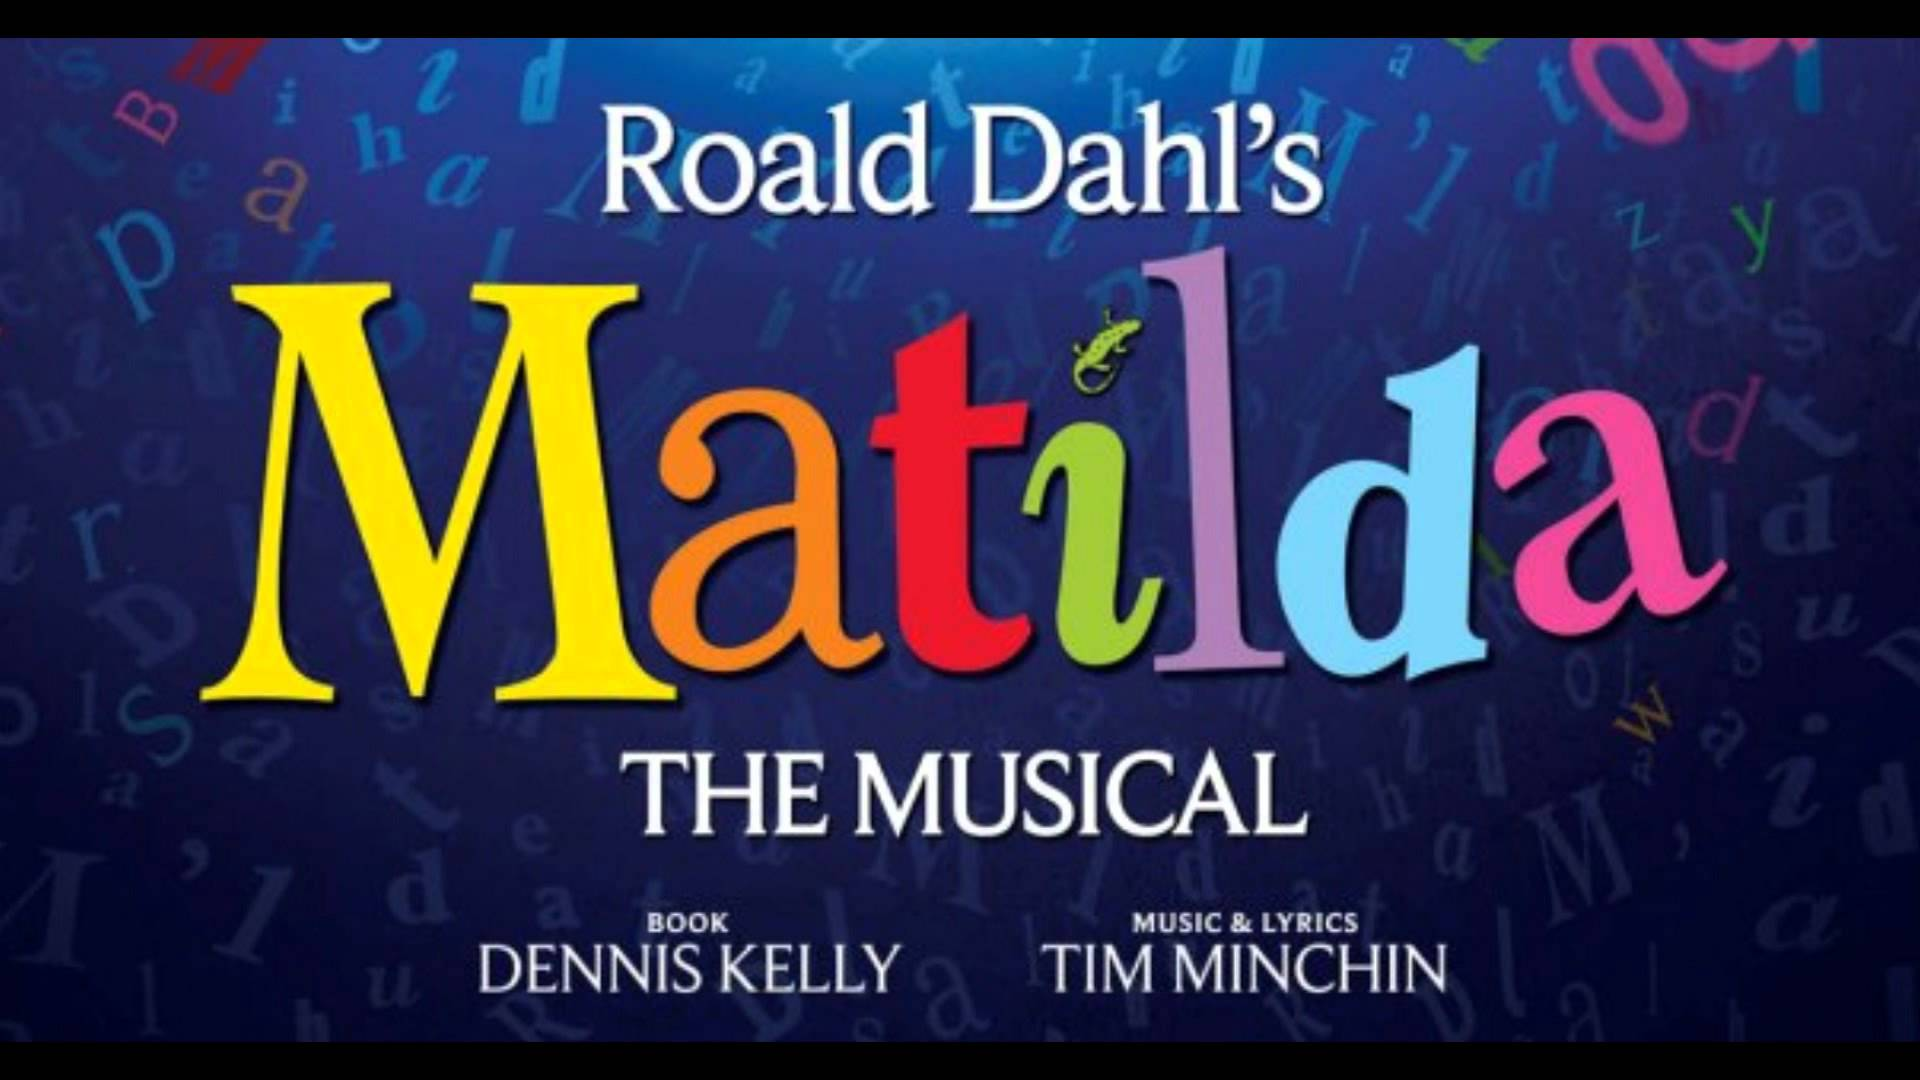 Buy Matilda The Musical Tickets Today